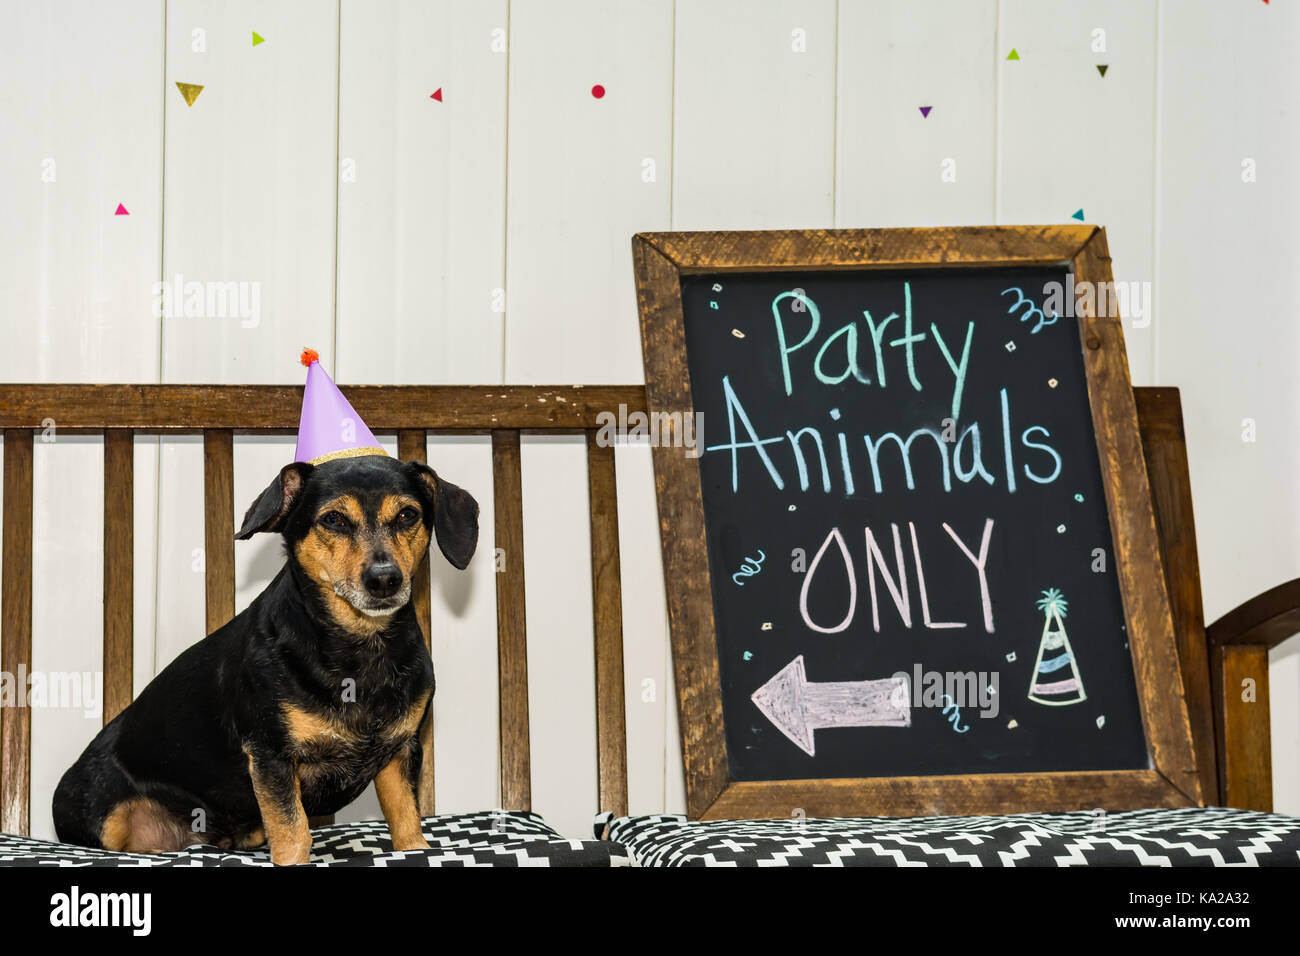 A cute Dachshund at a Party Animal theme party. - Stock Image